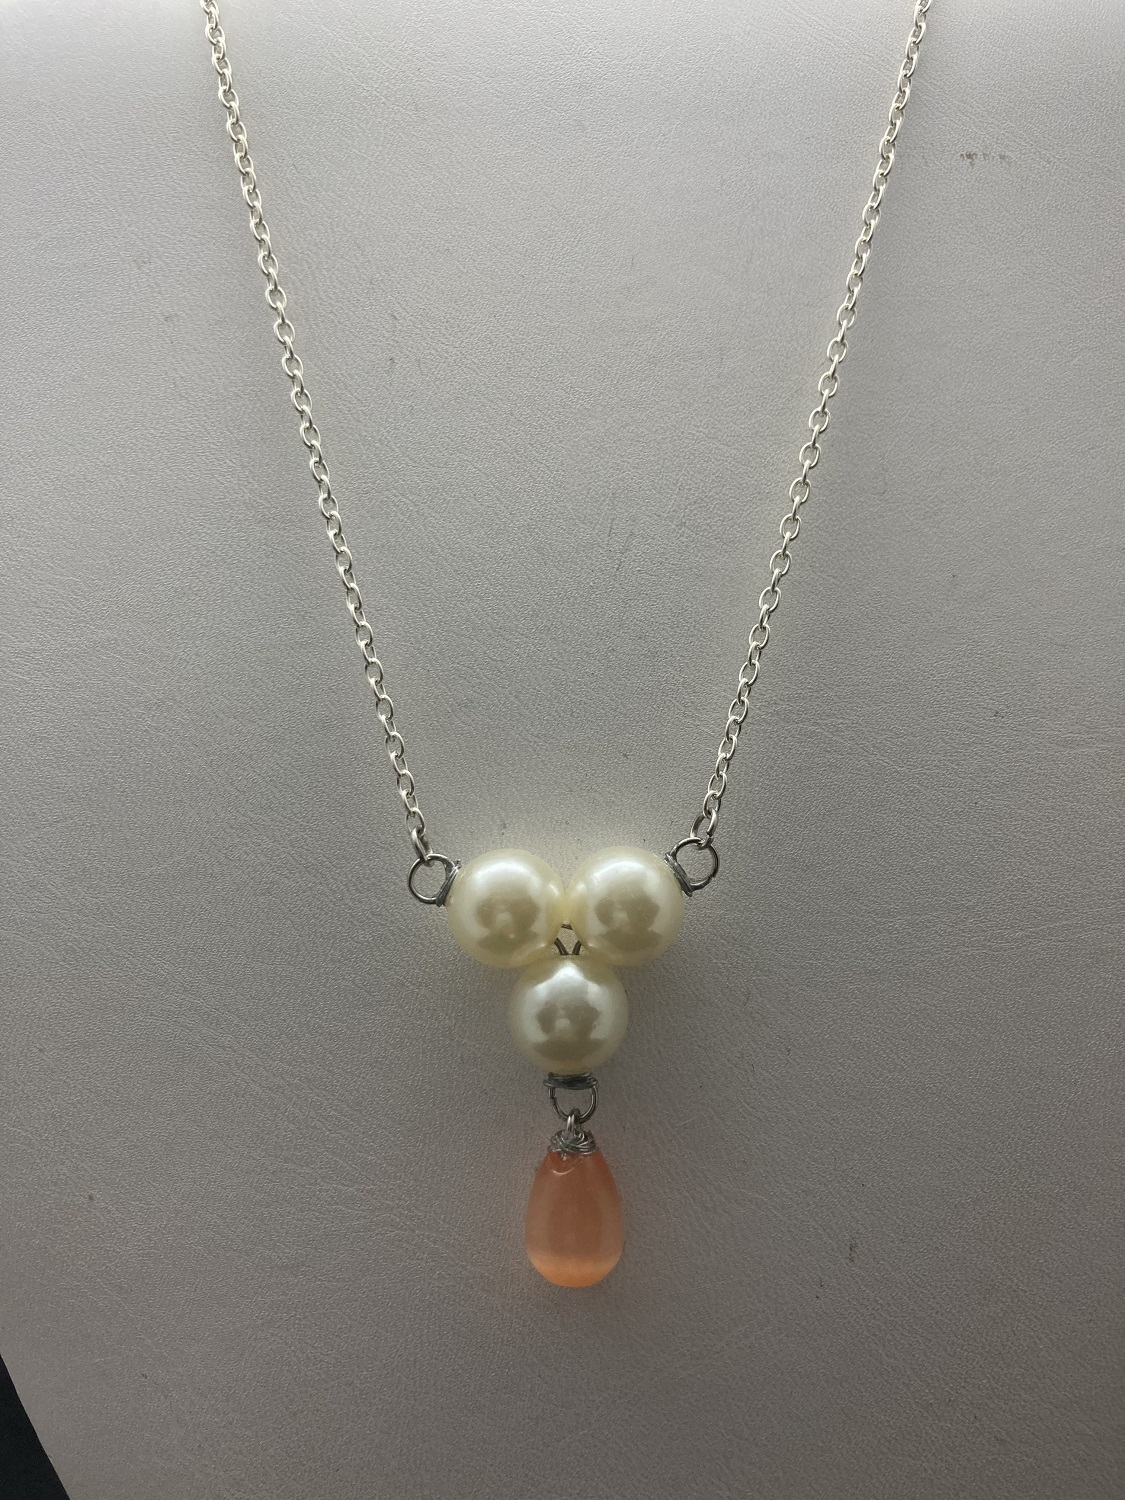 Orange cat eye Crystal necklace with pearl beads